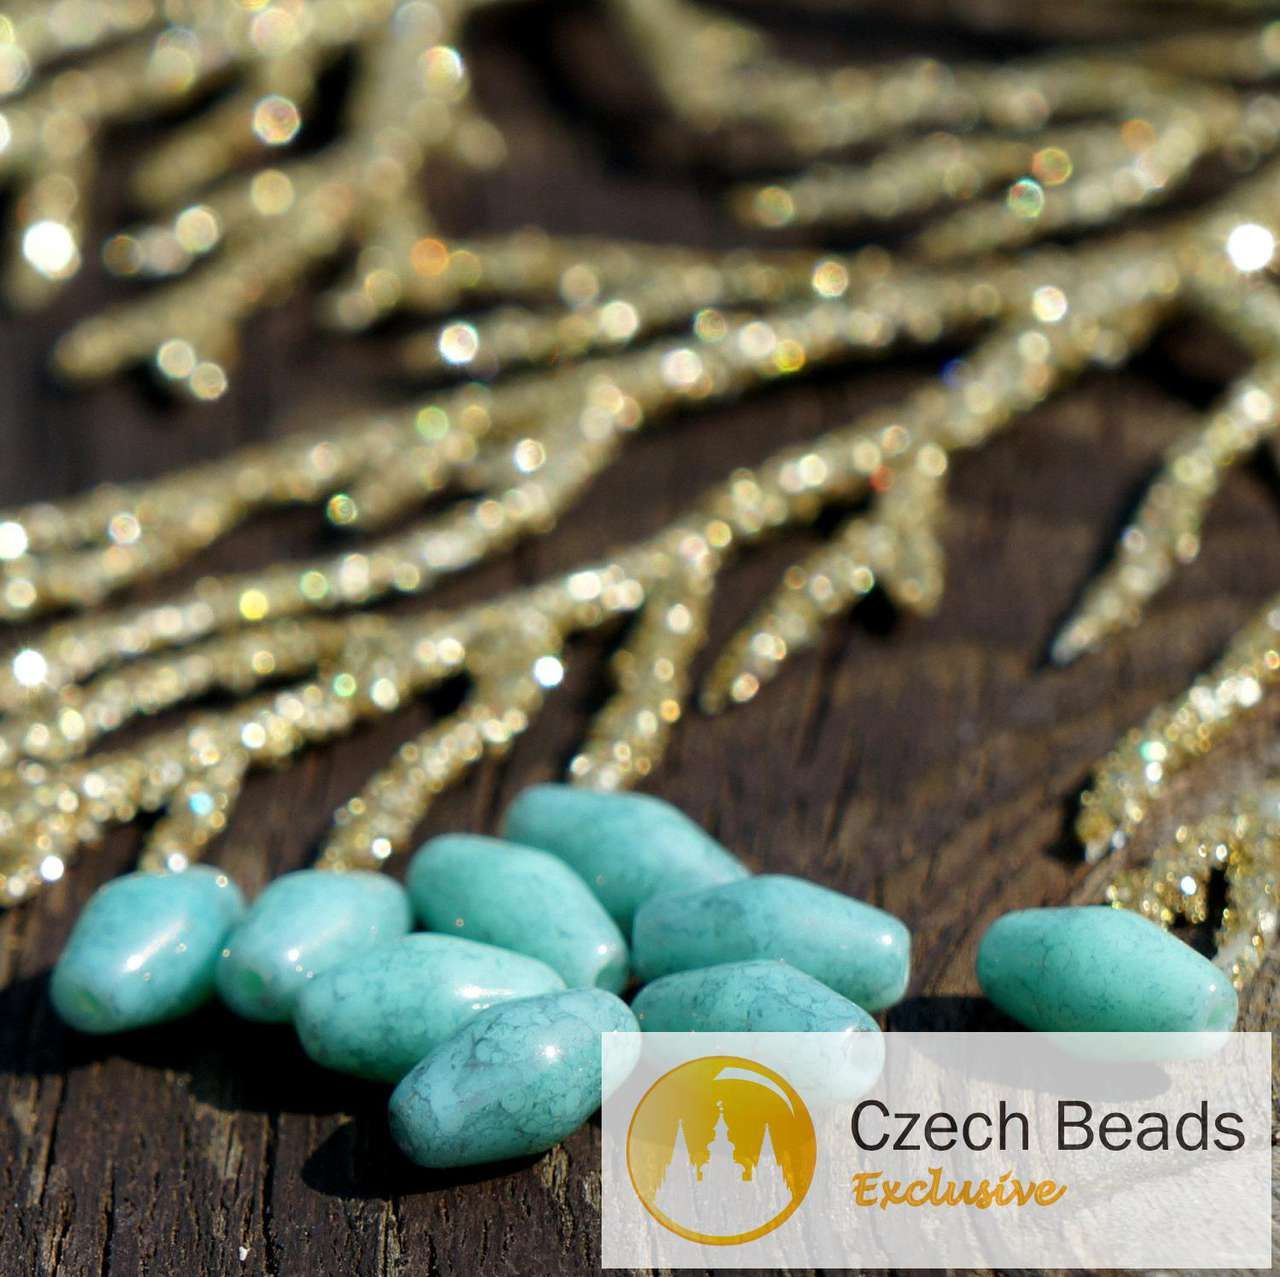 ✔ What's Hot Today: Picasso Turquoise Glass Tube Beads Czech Glass Beads Bohemian Bead Picasso Turquoise Tube Bead Turquoise Rectangle Tube Bead 10mm x 5mm 20pc https://czechbeadsexclusive.com/product/picasso-turquoise-glass-tube-beads-czech-glass-beads-bohemian-bead-picasso-turquoise-tube-bead-turquoise-rectangle-tube-bead-10mm-x-5mm-20pc/?utm_source=PN&utm_medium=czechbeads&utm_campaign=SNAP #CzechBeadsExclusive #czechbeads #glassbeads #bead #beaded #beading #beadedjewelr